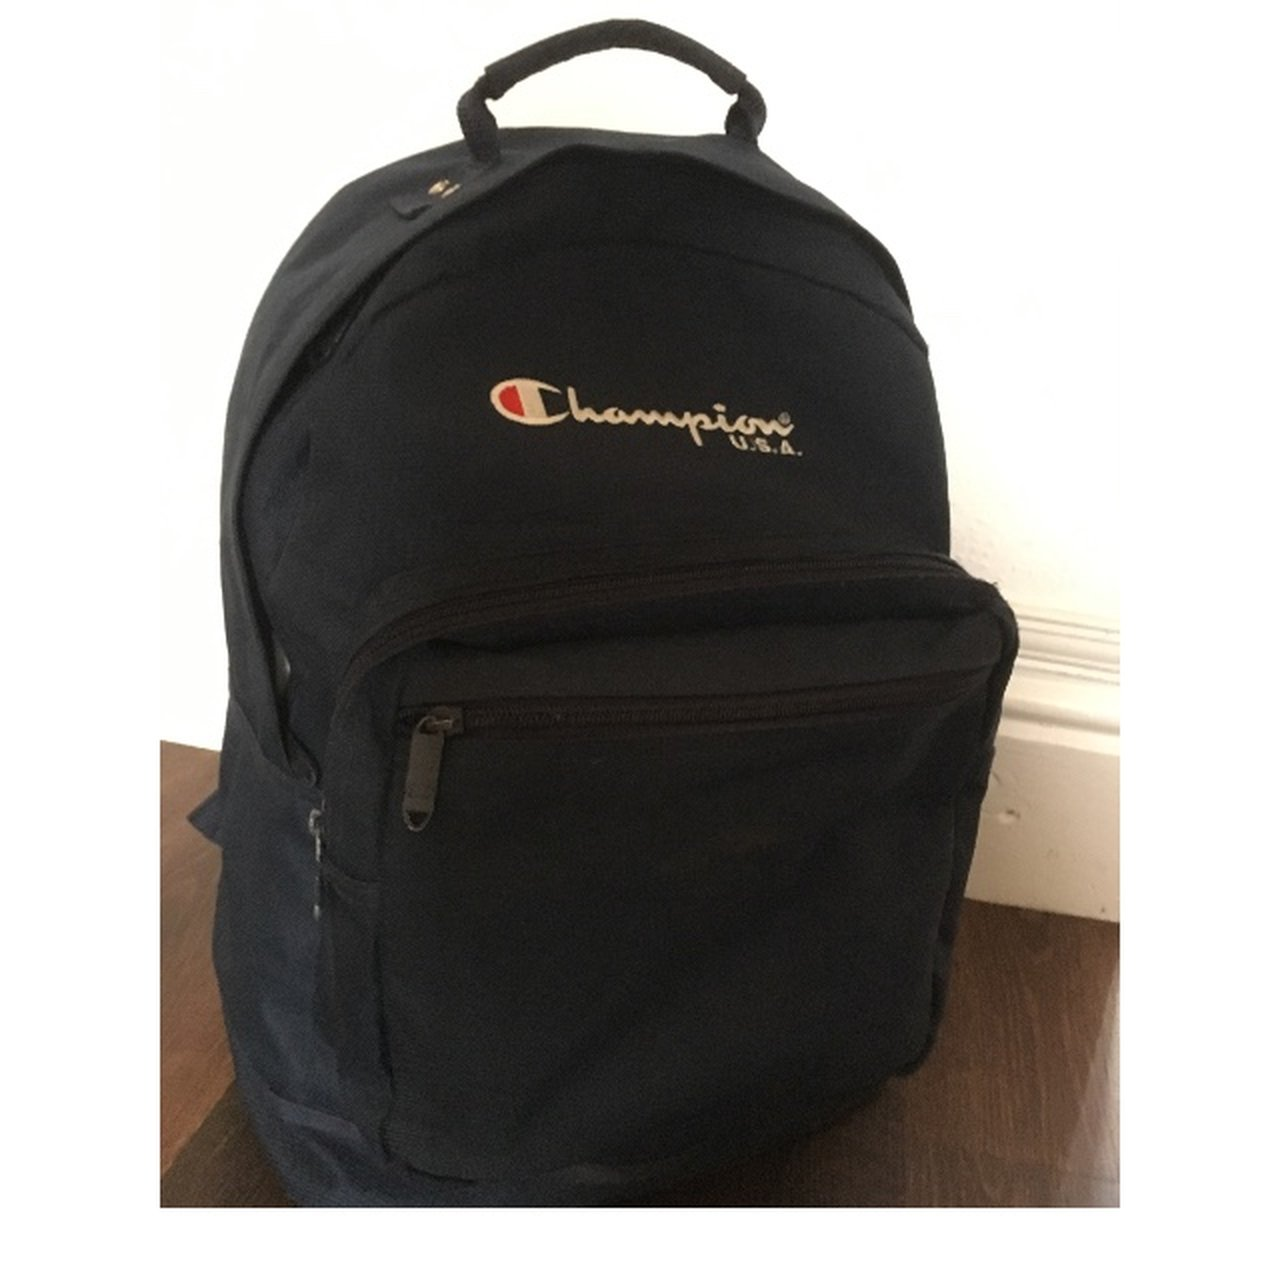 DONT BUY MAKE OFFERS Champion backpack Great condition a I - Depop e823a0e8d0dfe